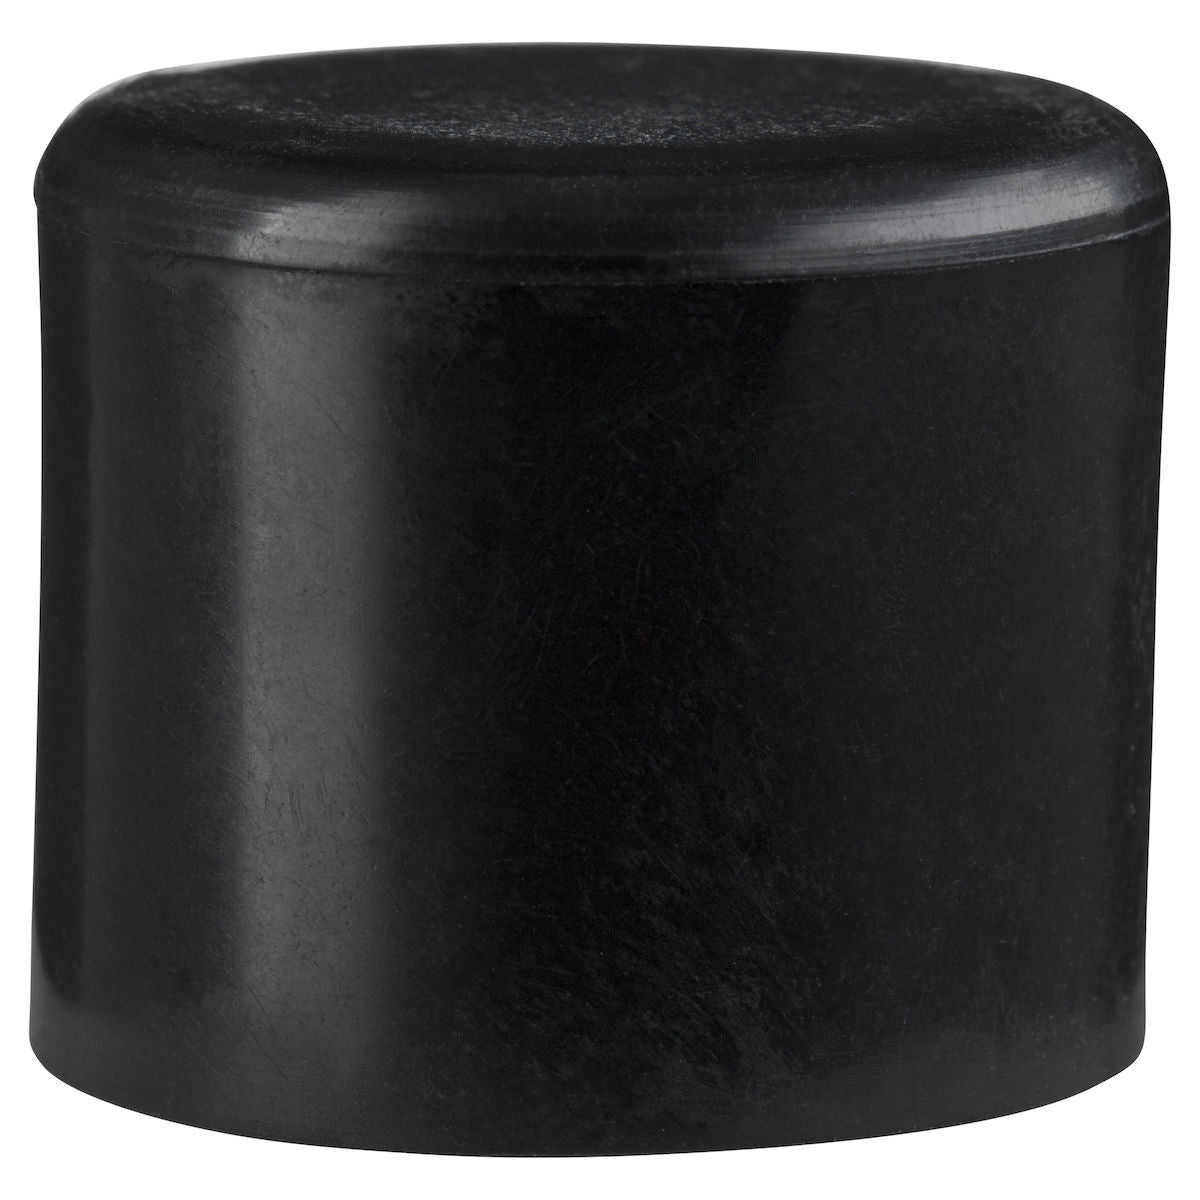 Hills FB607243 25mm Black End Cap